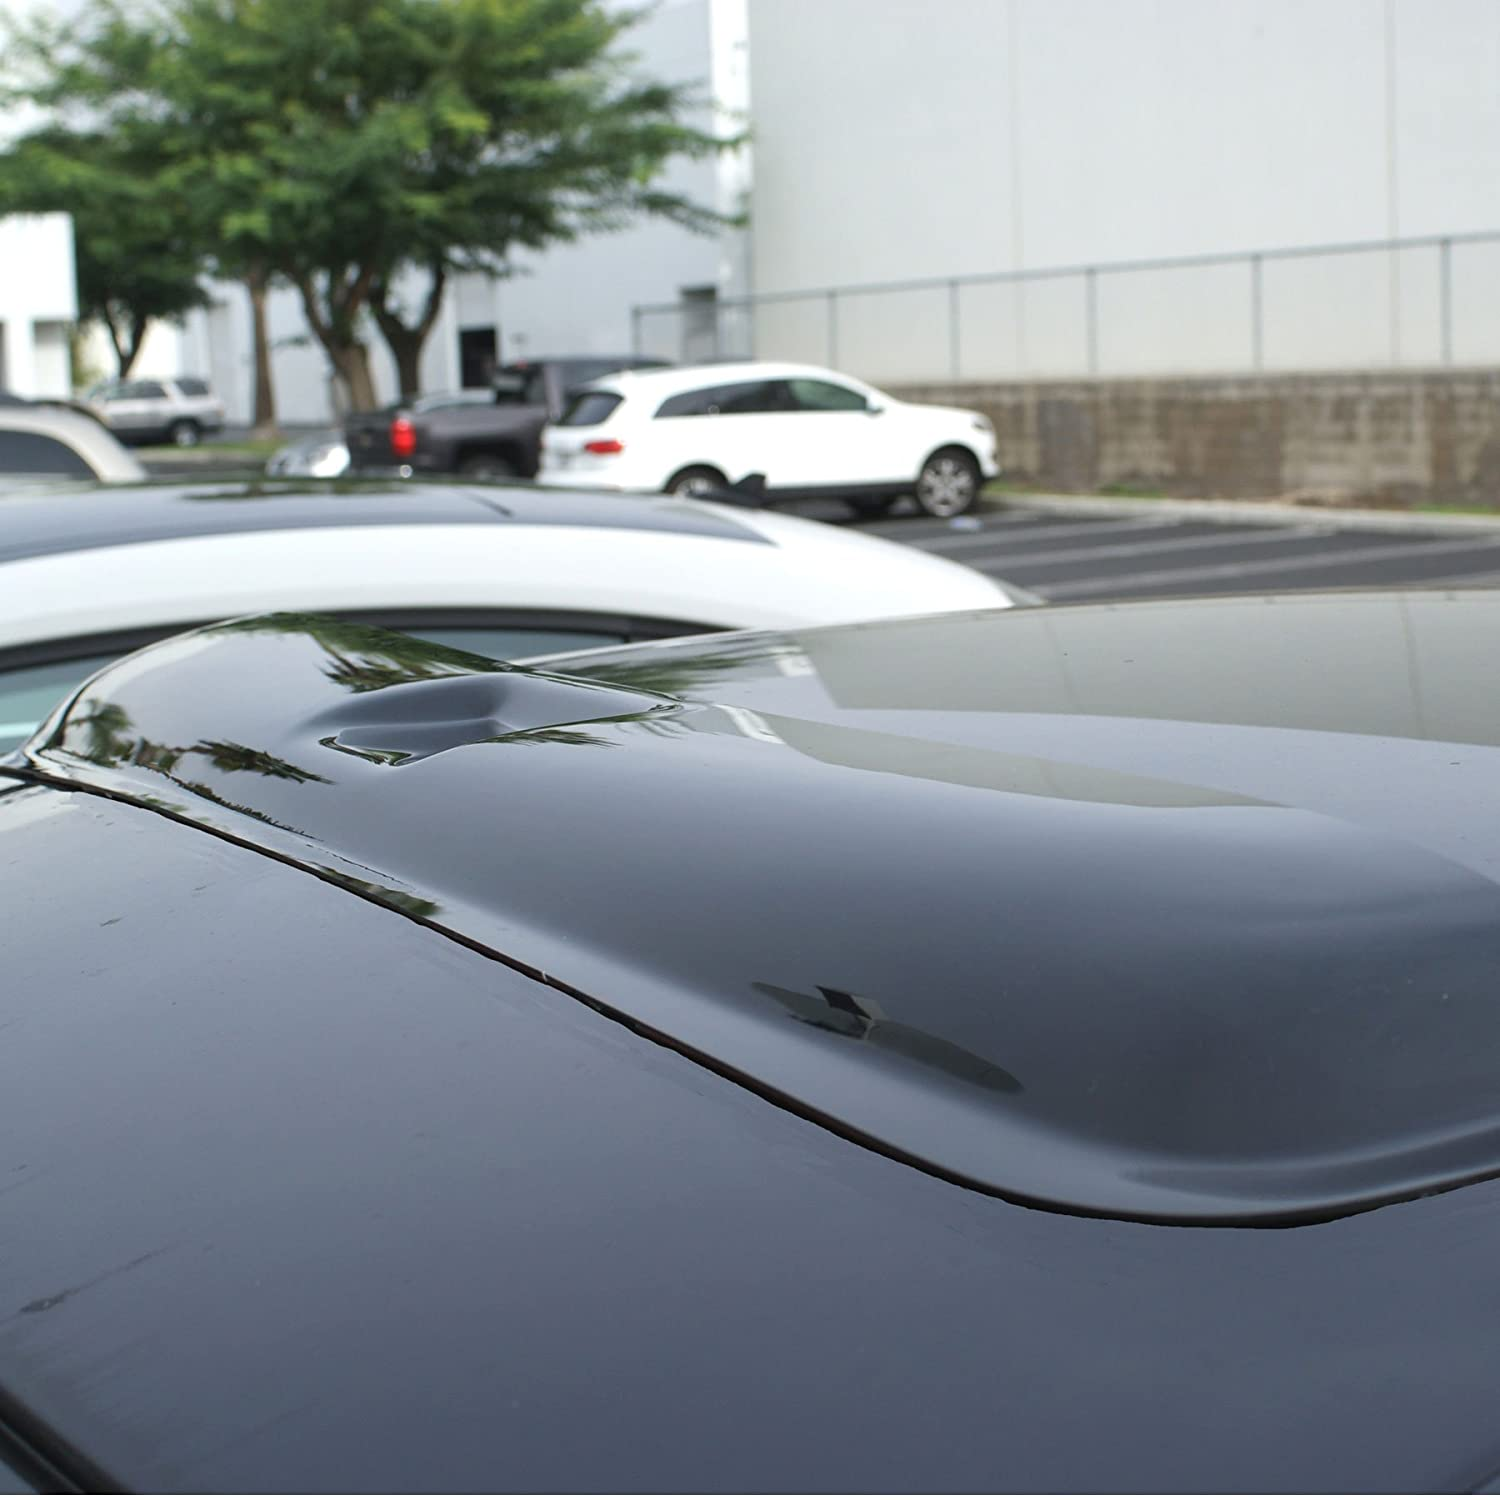 TuningPros WSVT2-668 Sunroof Moonroof Type 2 and Out-Side Mount Window Visor Deflector Rain Guard Dark Smoke 5-pc Set